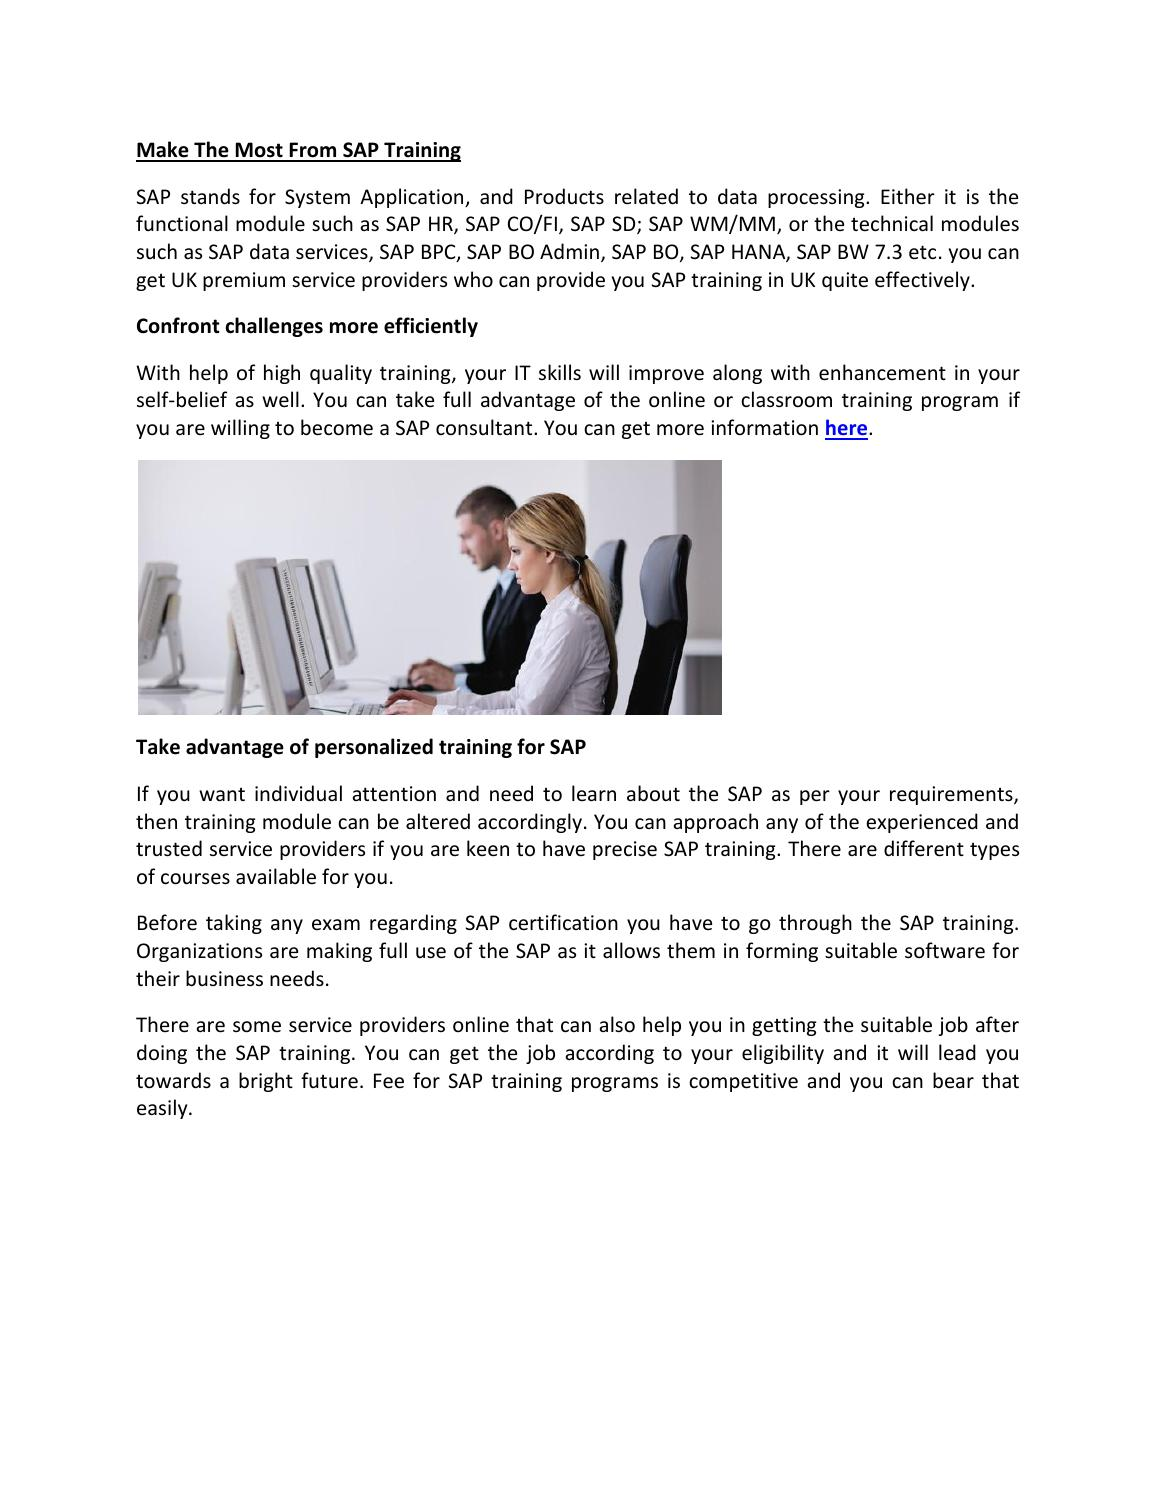 Make the most from sap training by Arnold Watson - issuu